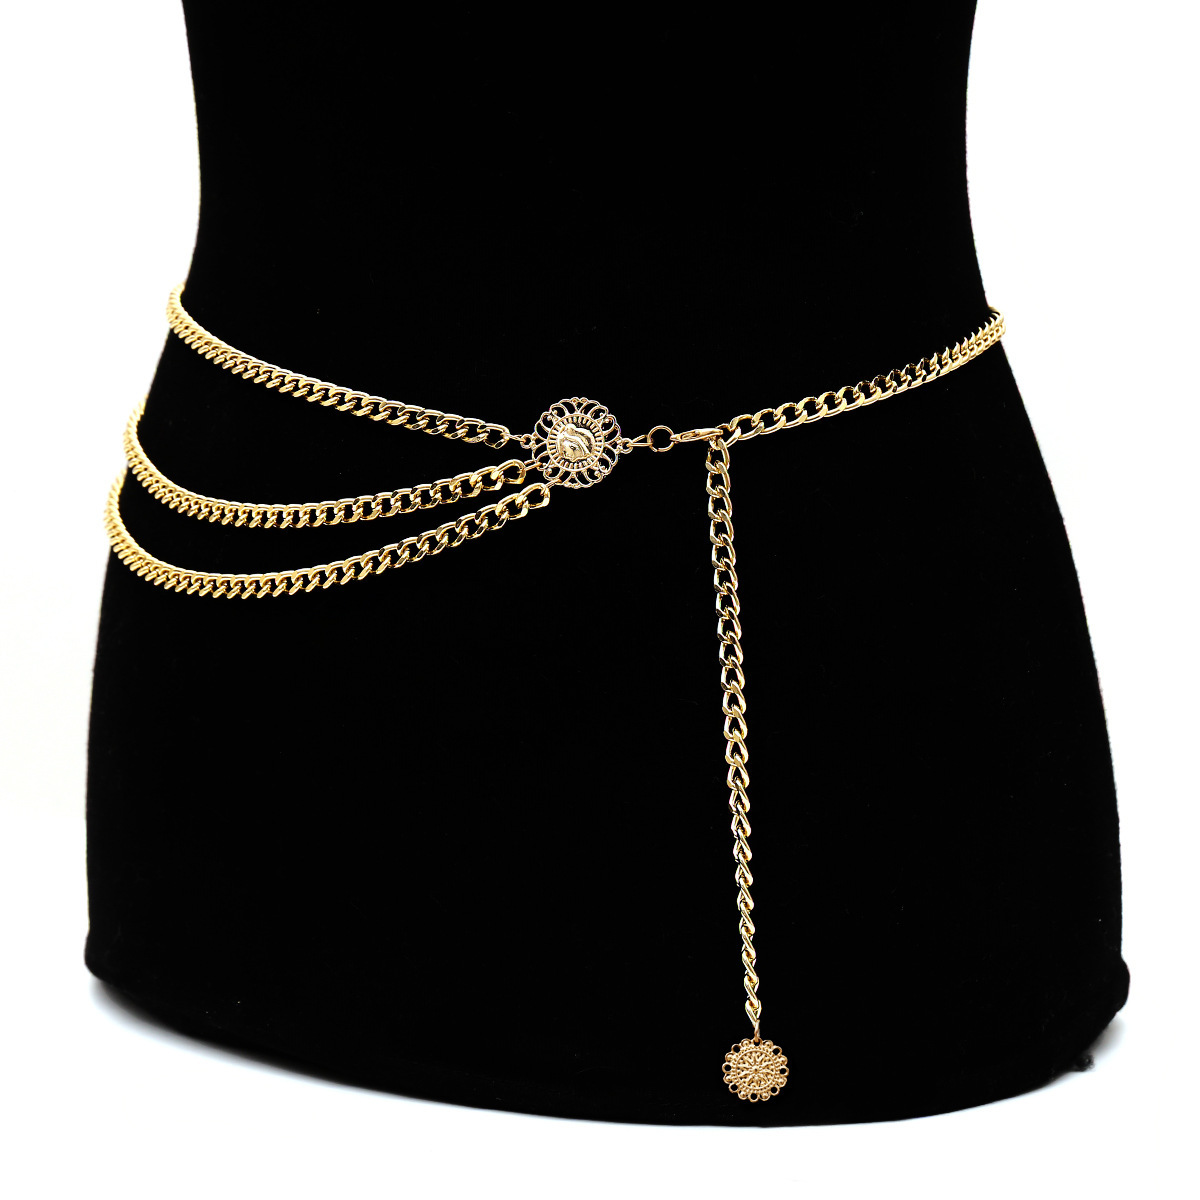 New Fashion Luxury Designer Brand Metal Chain   Belt   For Women Golden Coin Personality Hip Hop Style Female Tassel   Belts   Ceinture